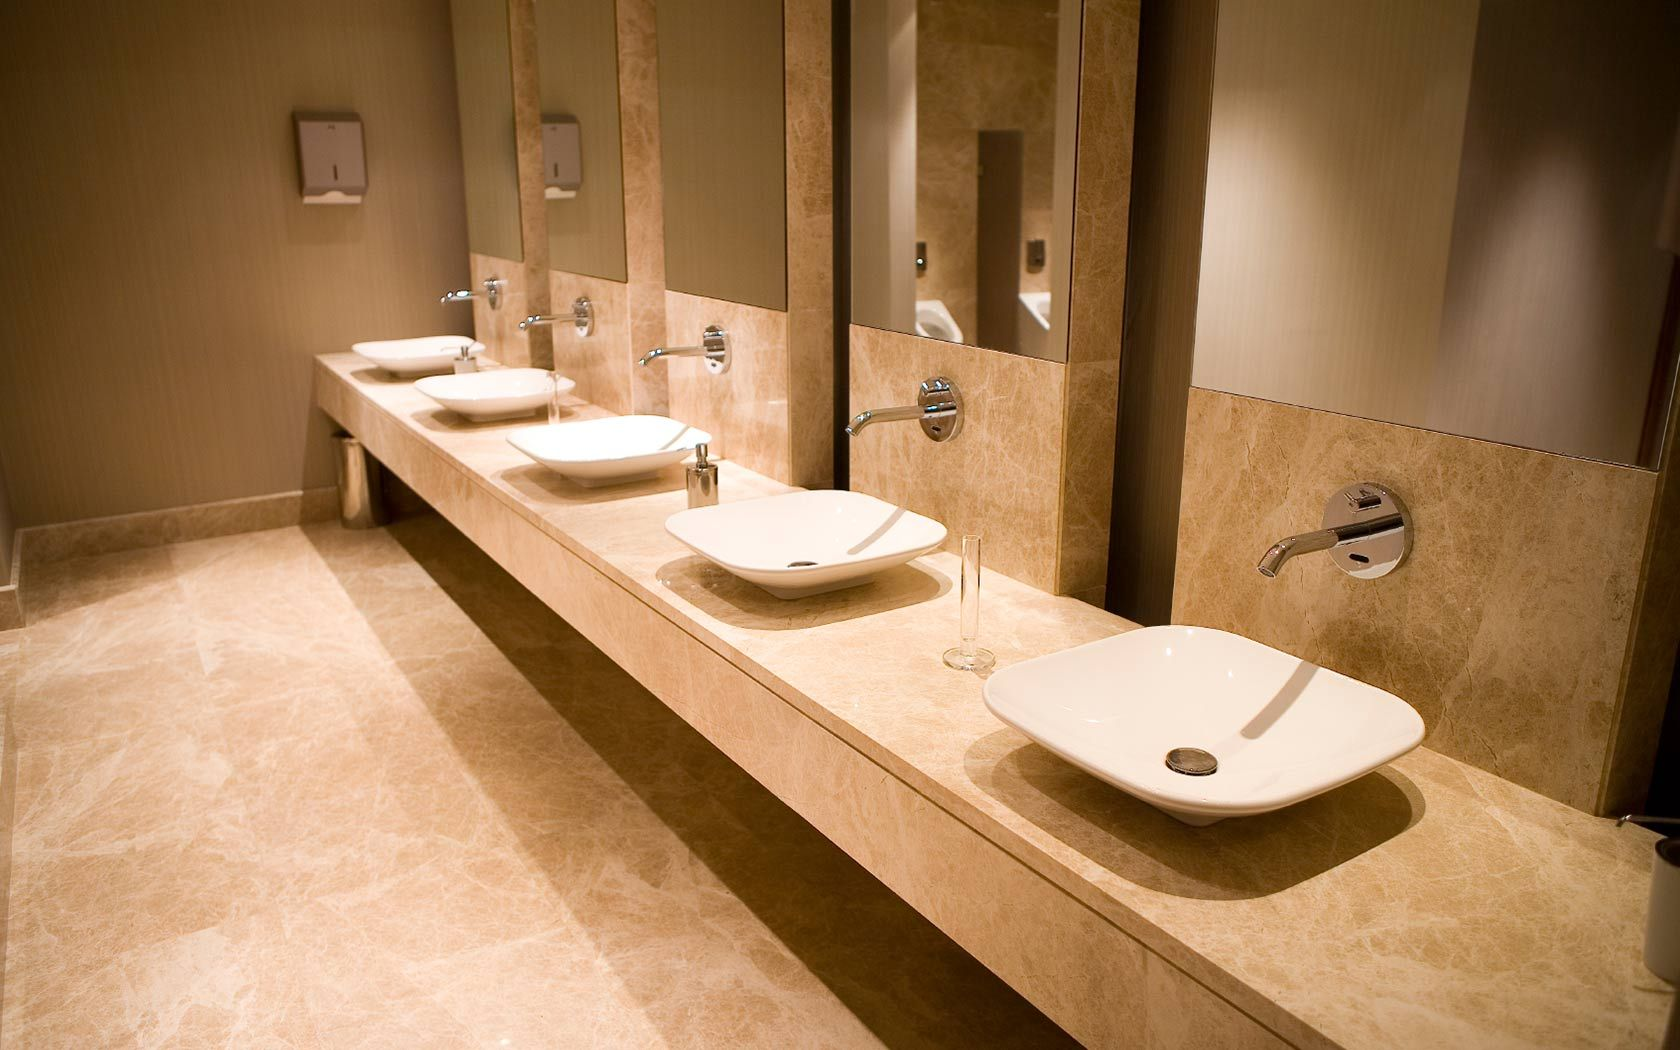 Commercial Bathroom Design Ideas Oriental Bowls W Wall Mounted Faucets  Commercial Rest Room